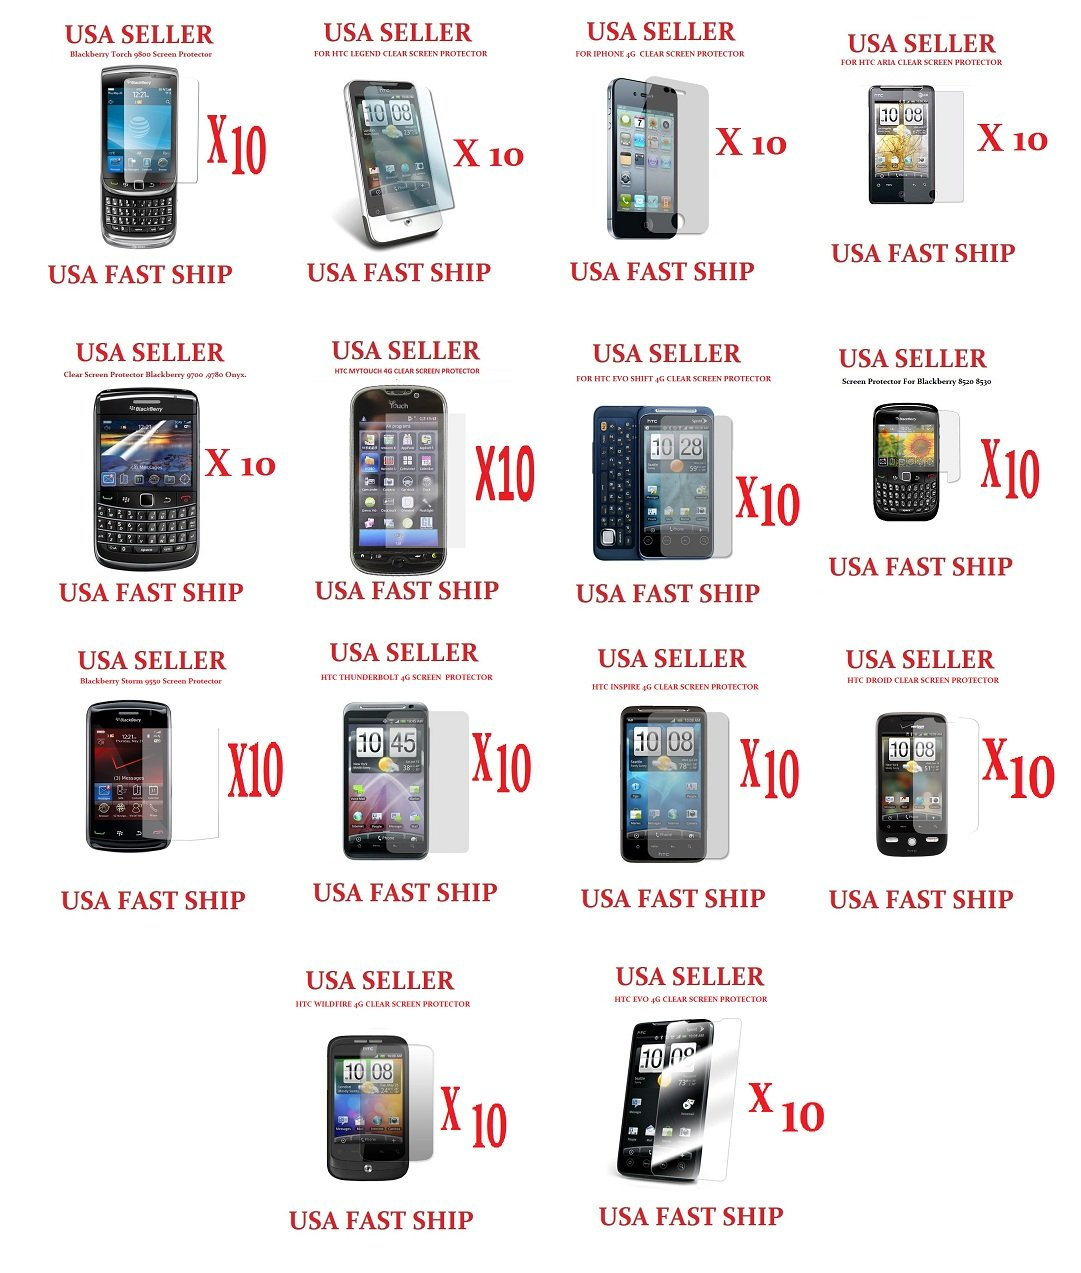 140 Units Clear Screen Protectors Wholesale lot htc Legend Aria Wildfire Evo blackberry iphone 4g